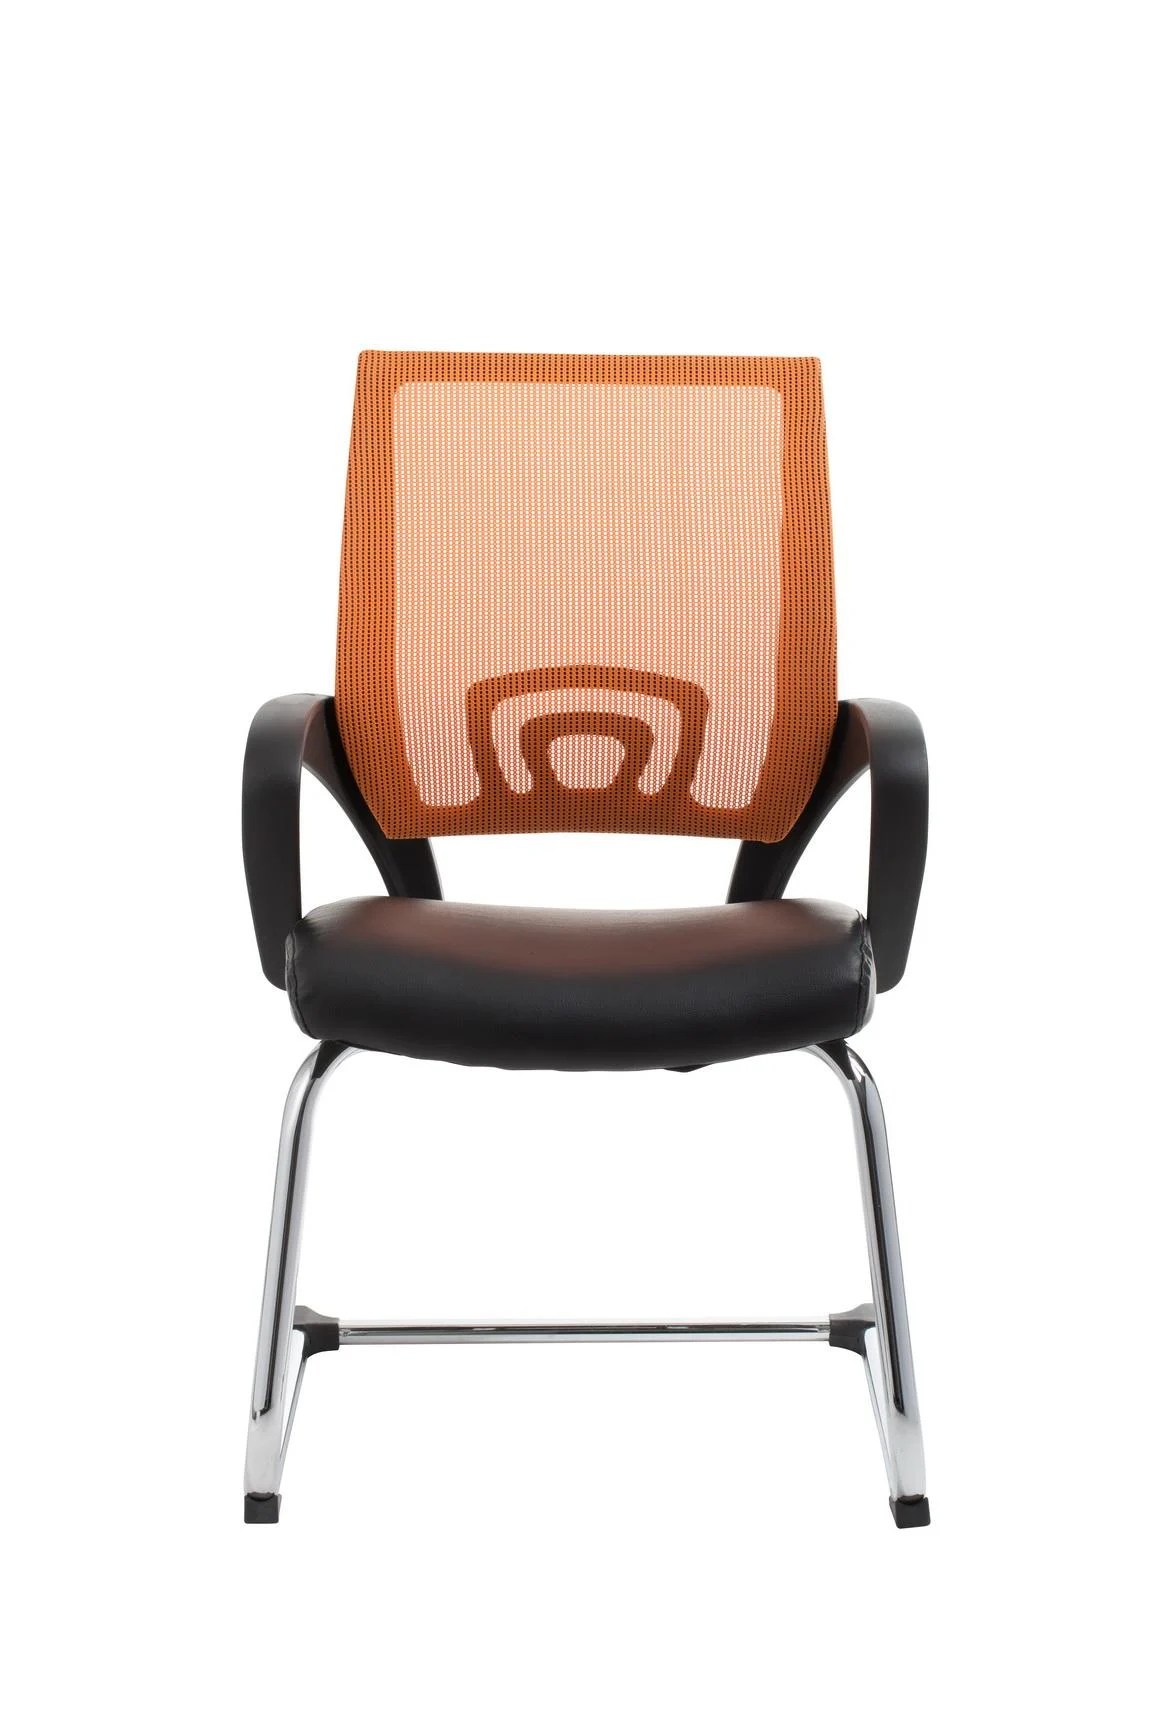 orange office chair portable desk and combo view visitor in furniture store